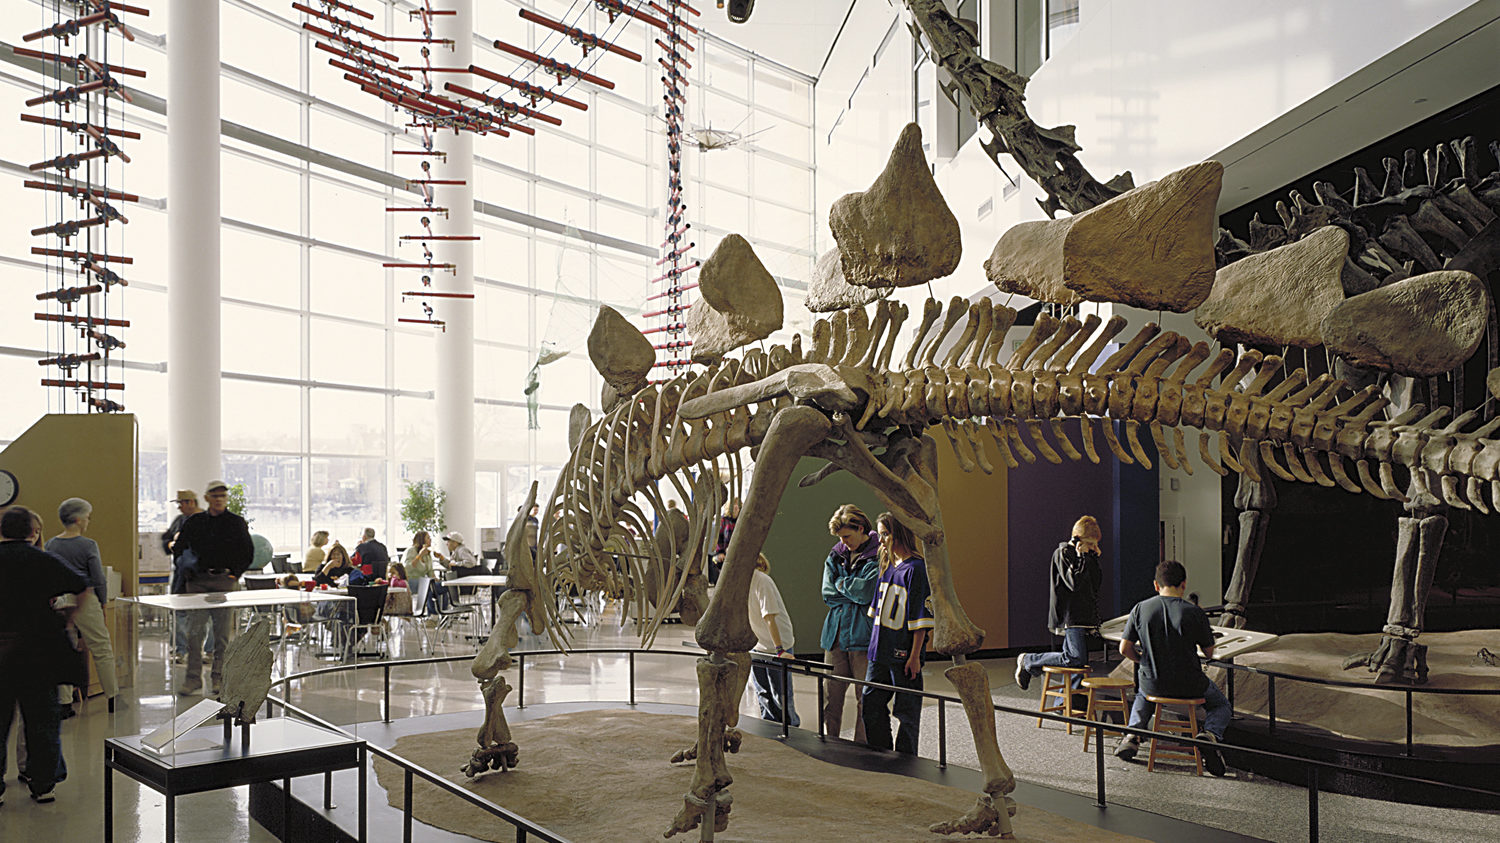 An interior view of SMM, with a large dinosaur fossil on display.